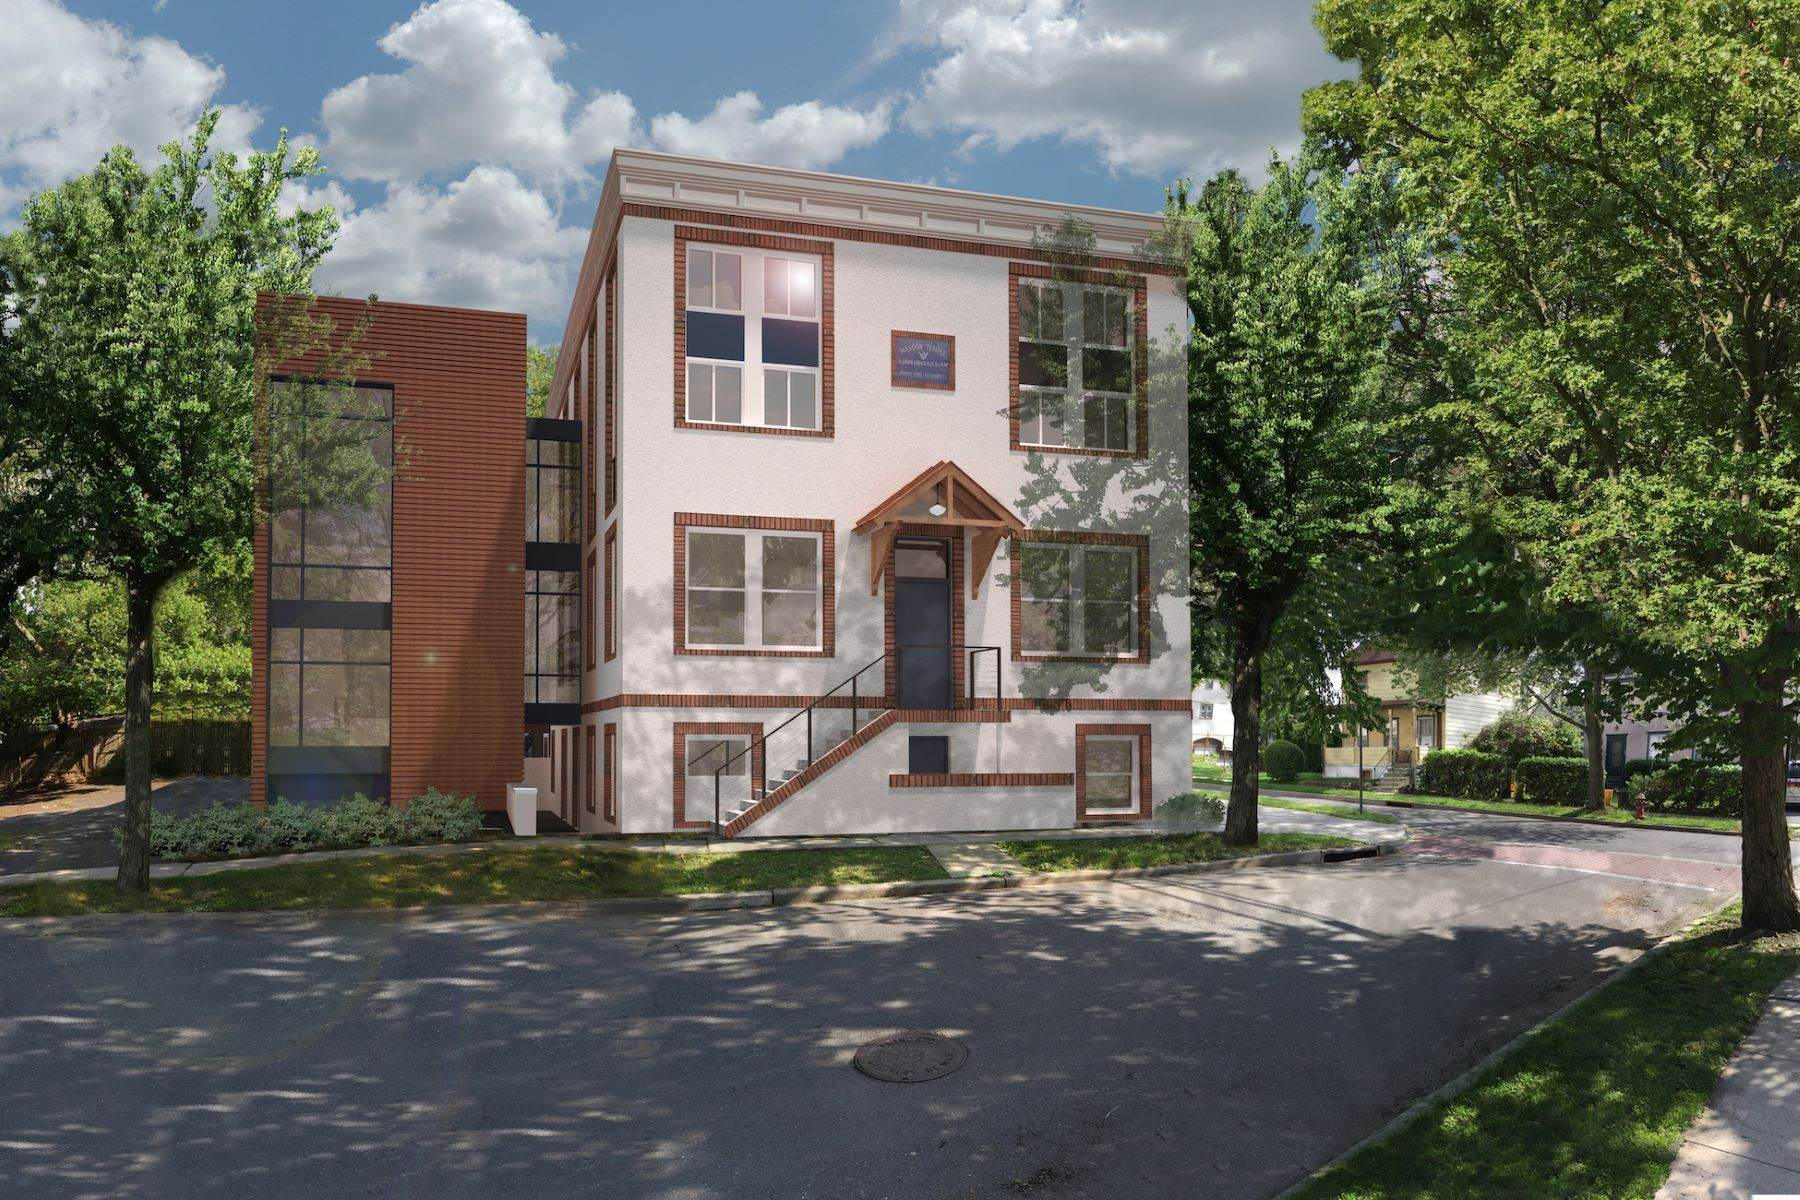 Apartments at Welcome to 30 Maclean! 30 Maclean Street, Unit 10, Princeton, New Jersey 08542 United States